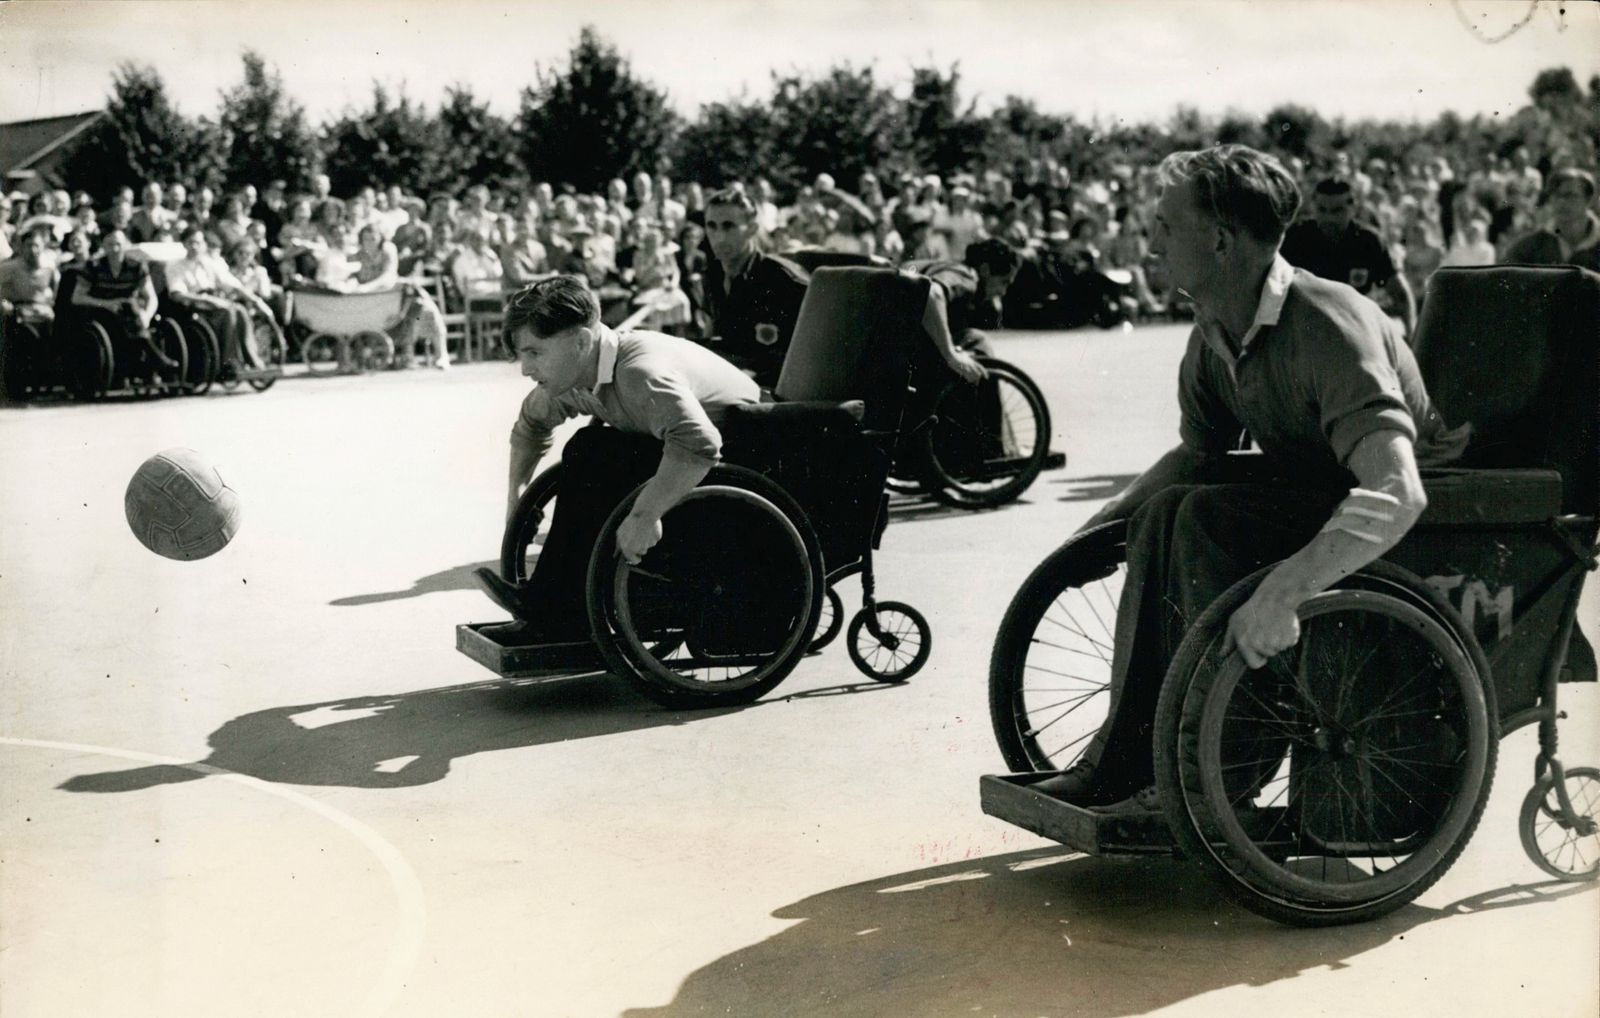 Jul 07 1930 The Stoke Mandeville games at Aylesbury The annual Inter Spinal Unit Sports Festiv